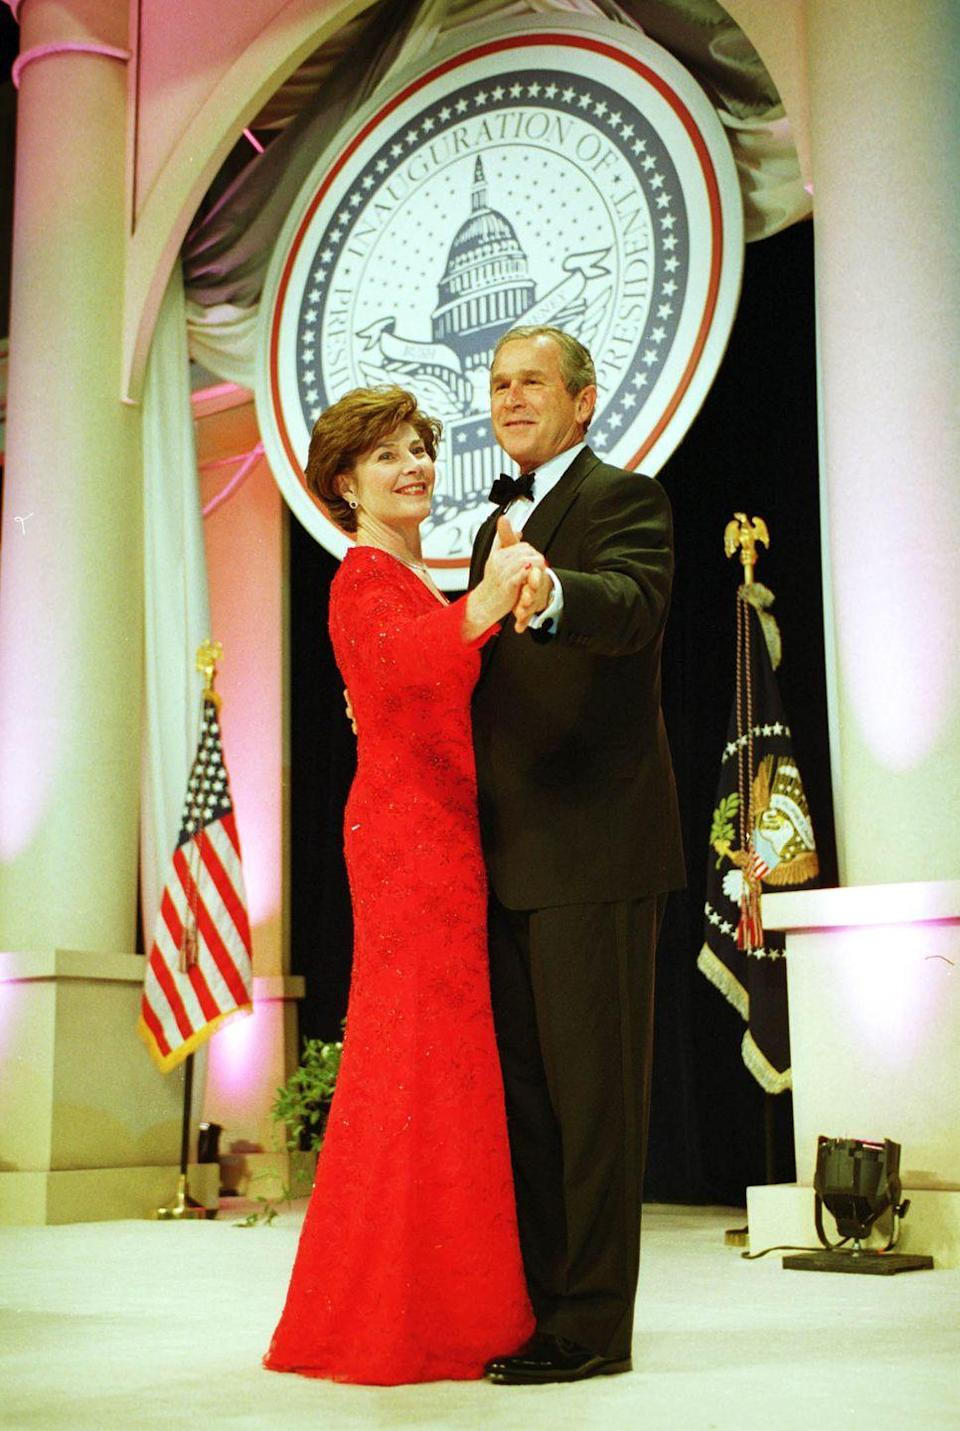 """<p>In order to attend all of the inaugural balls thrown in George W. Bush's honor in January 2001, the couple could only dance for an estimated <a href=""""https://www.usnews.com/news/obama/articles/2008/12/17/the-long-and-sometimes-glamorous--history-of-inaugural-balls"""" rel=""""nofollow noopener"""" target=""""_blank"""" data-ylk=""""slk:29 to 50 seconds"""" class=""""link rapid-noclick-resp"""">29 to 50 seconds</a> at each event. Here, First Lady Laura Bush looks striking in a red lace long-sleeve gown by Texas designer Michael Faircloth. </p>"""